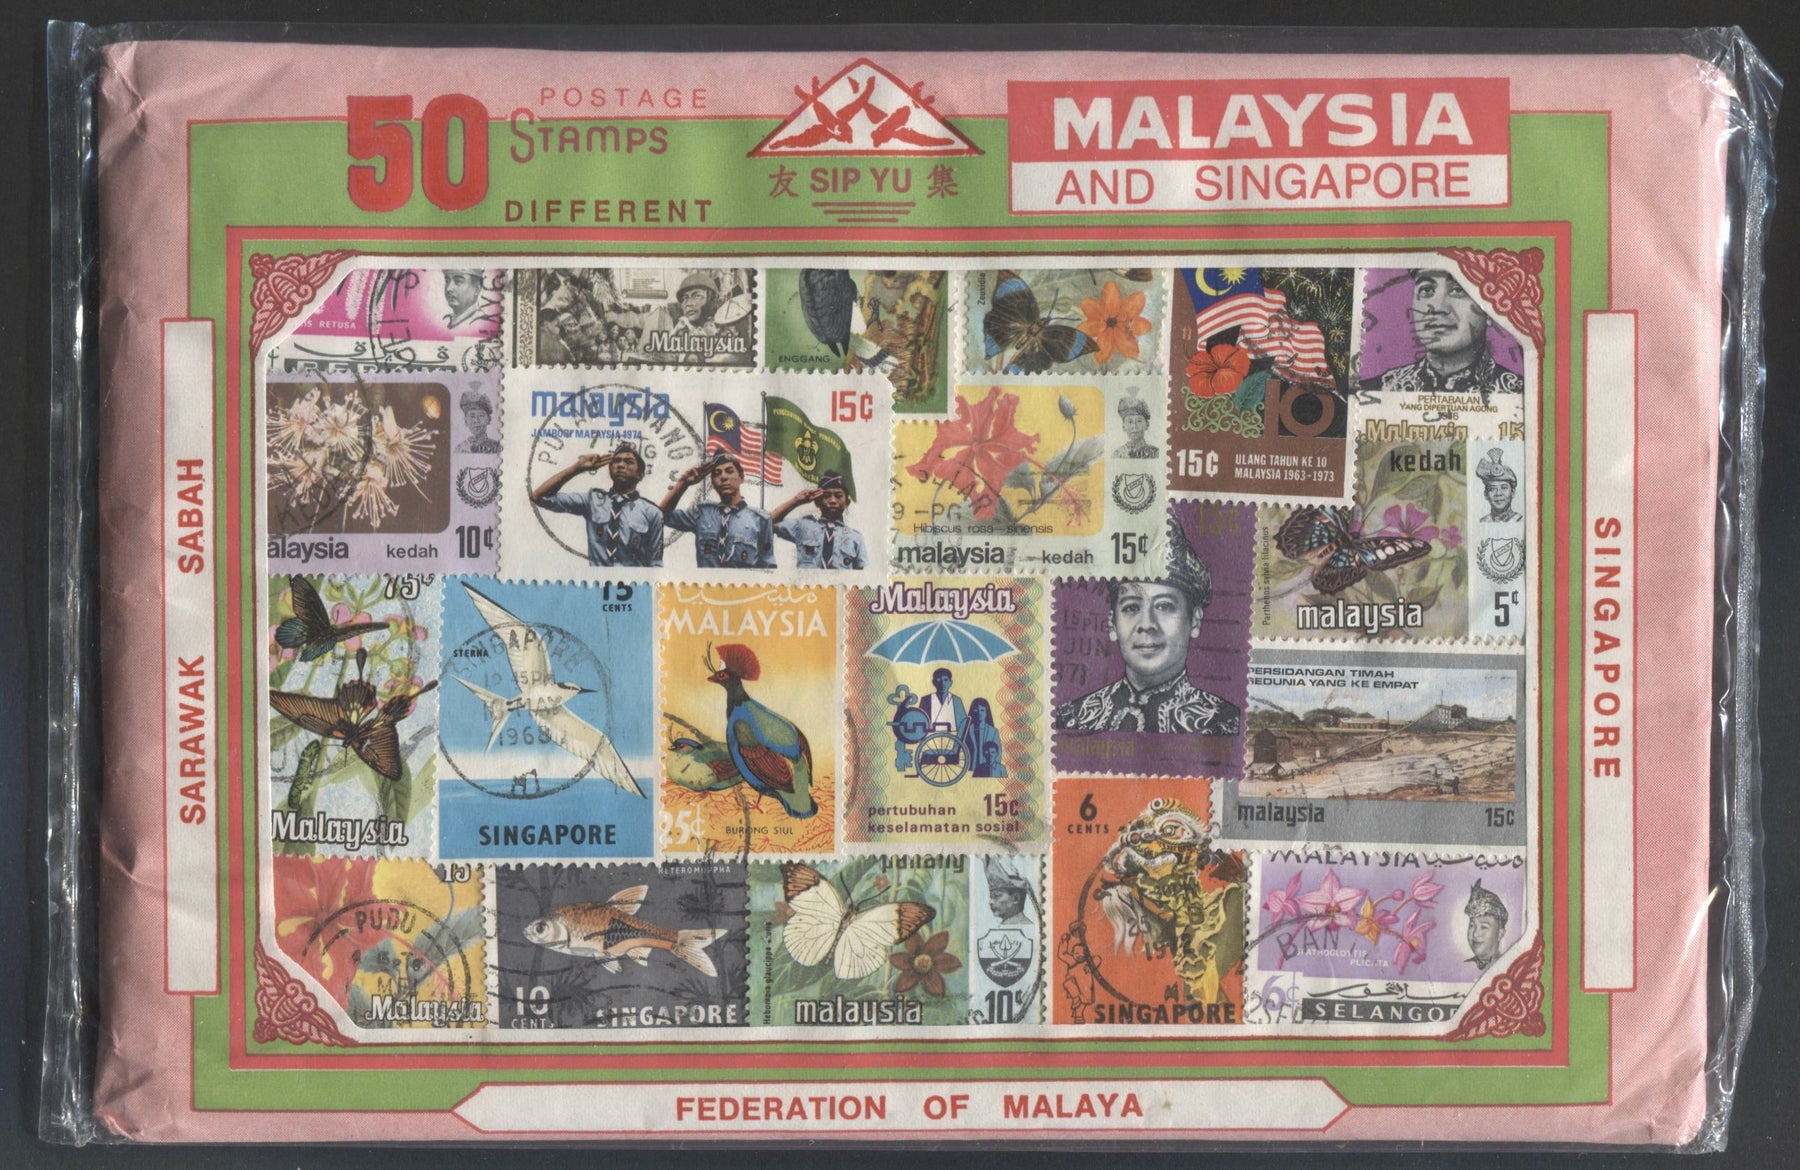 Malaysia and Singapore - 1970's Sip Yu Packet of 50 Stamps - Still Sealed! Ideal for Framing Brixton Chrome